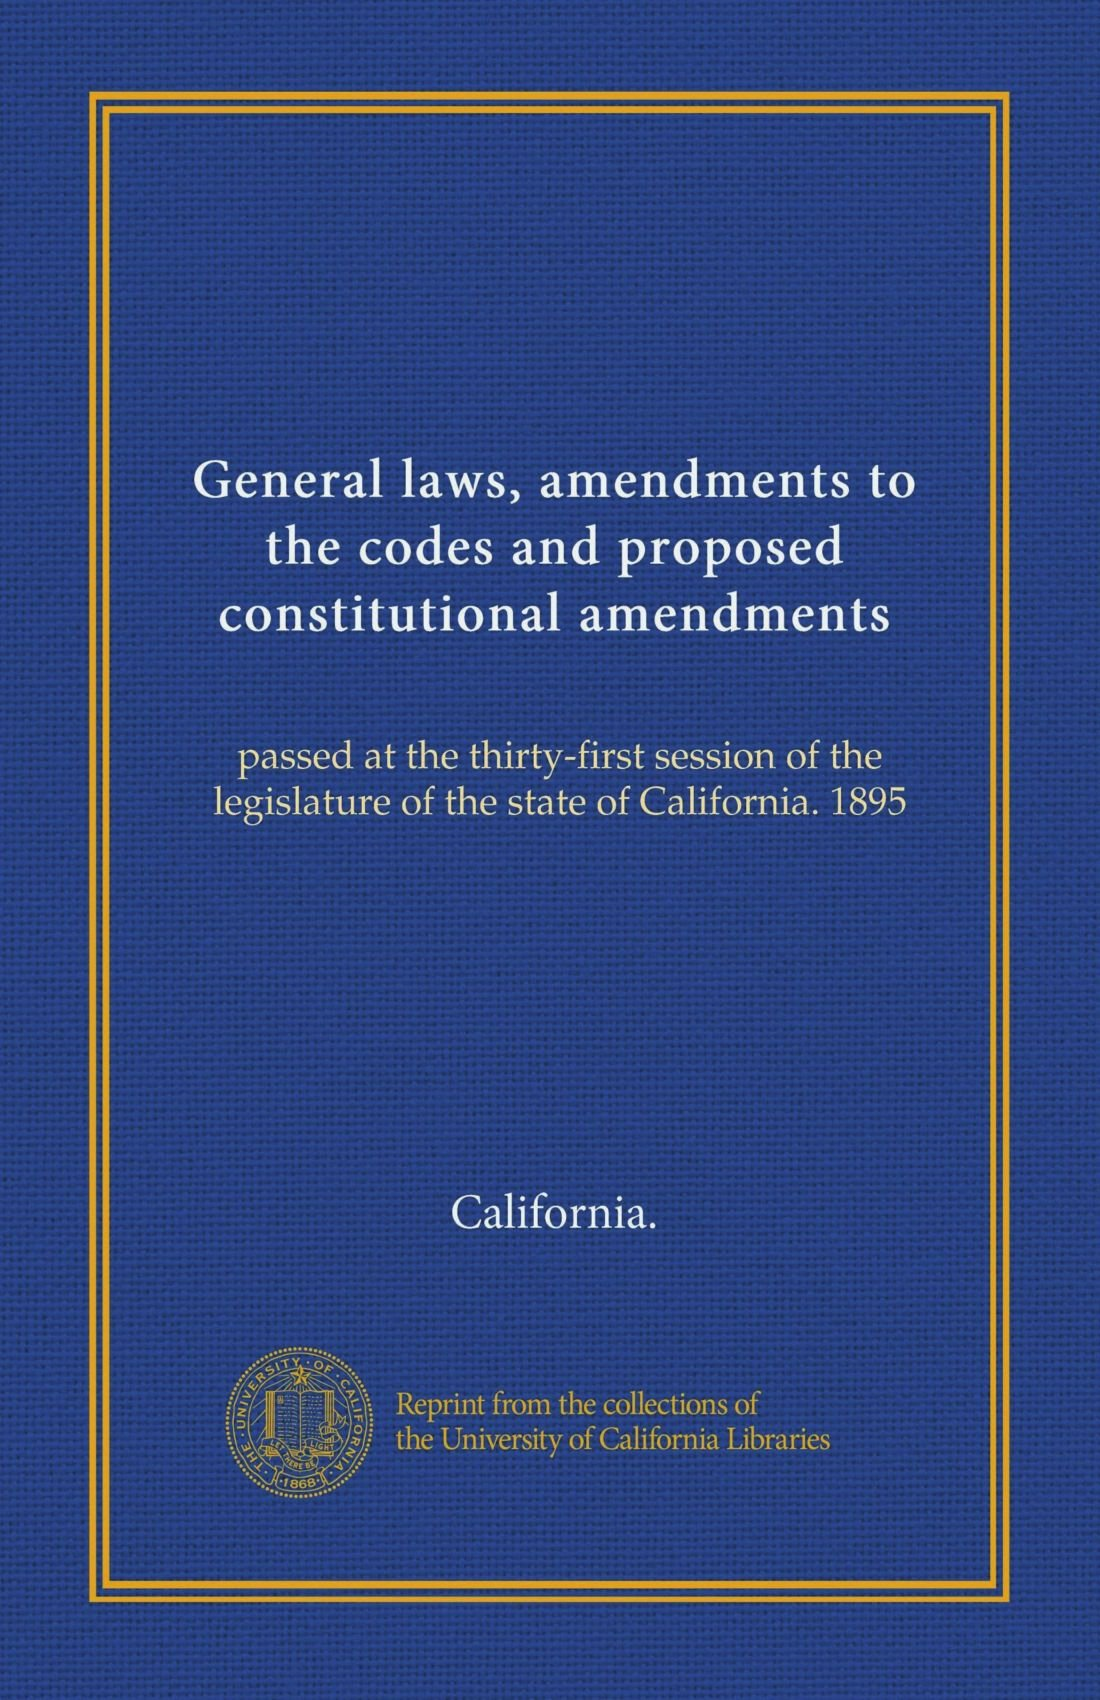 General laws, amendments to the codes and proposed constitutional amendments (Vol-1): passed at the thirty-first session of the legislature of the state of California. 1895 PDF